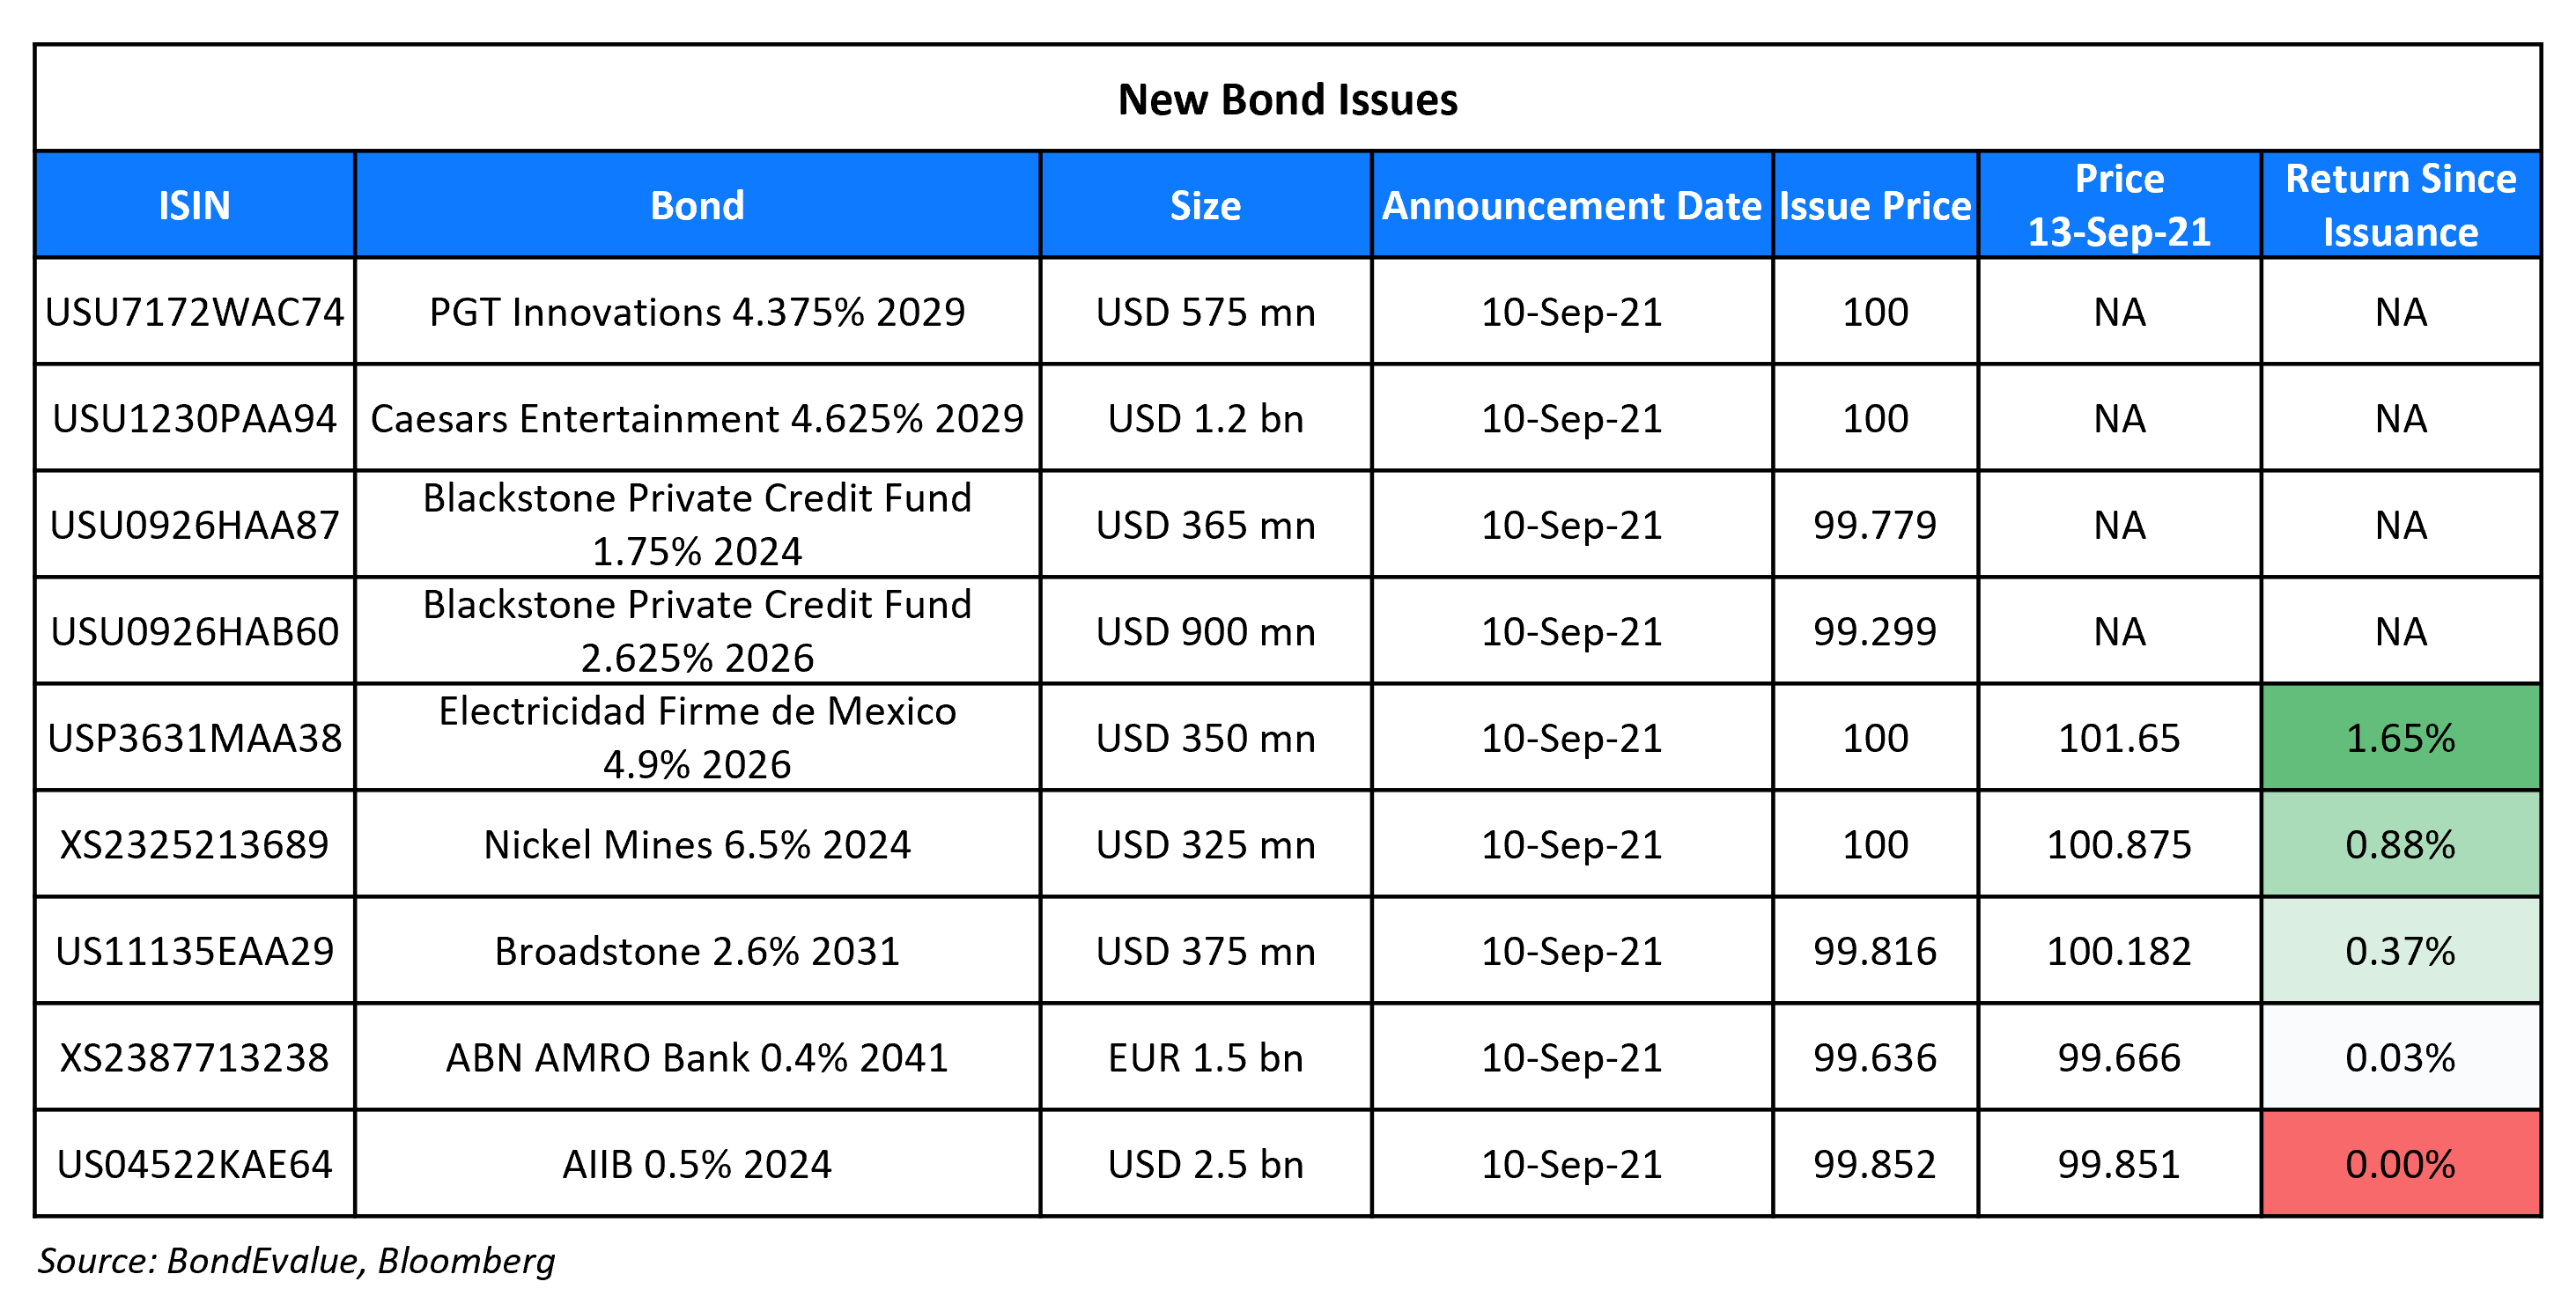 New Bond Issues 13 Sep